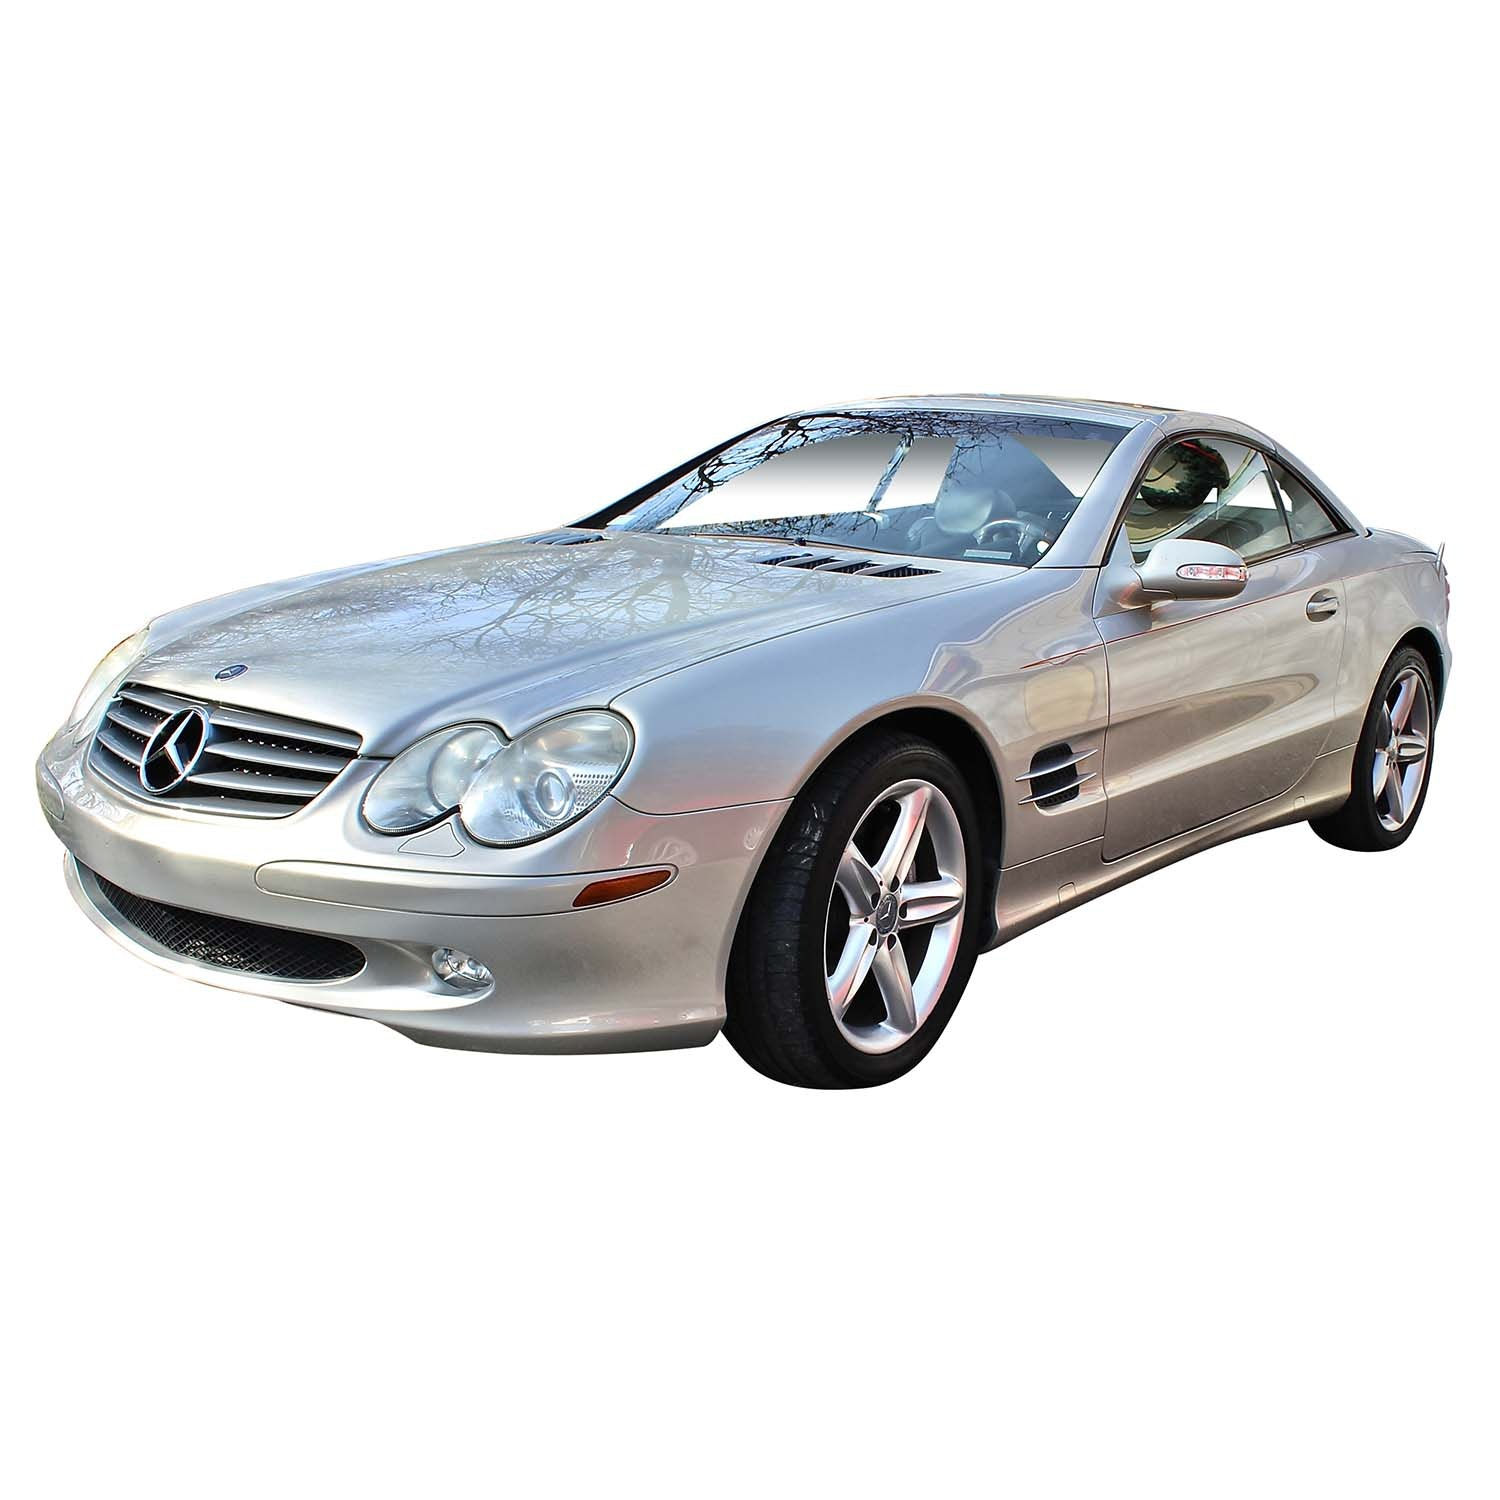 "2003 Mercedes-Benz SL500 ""Designo Launch Edition"""